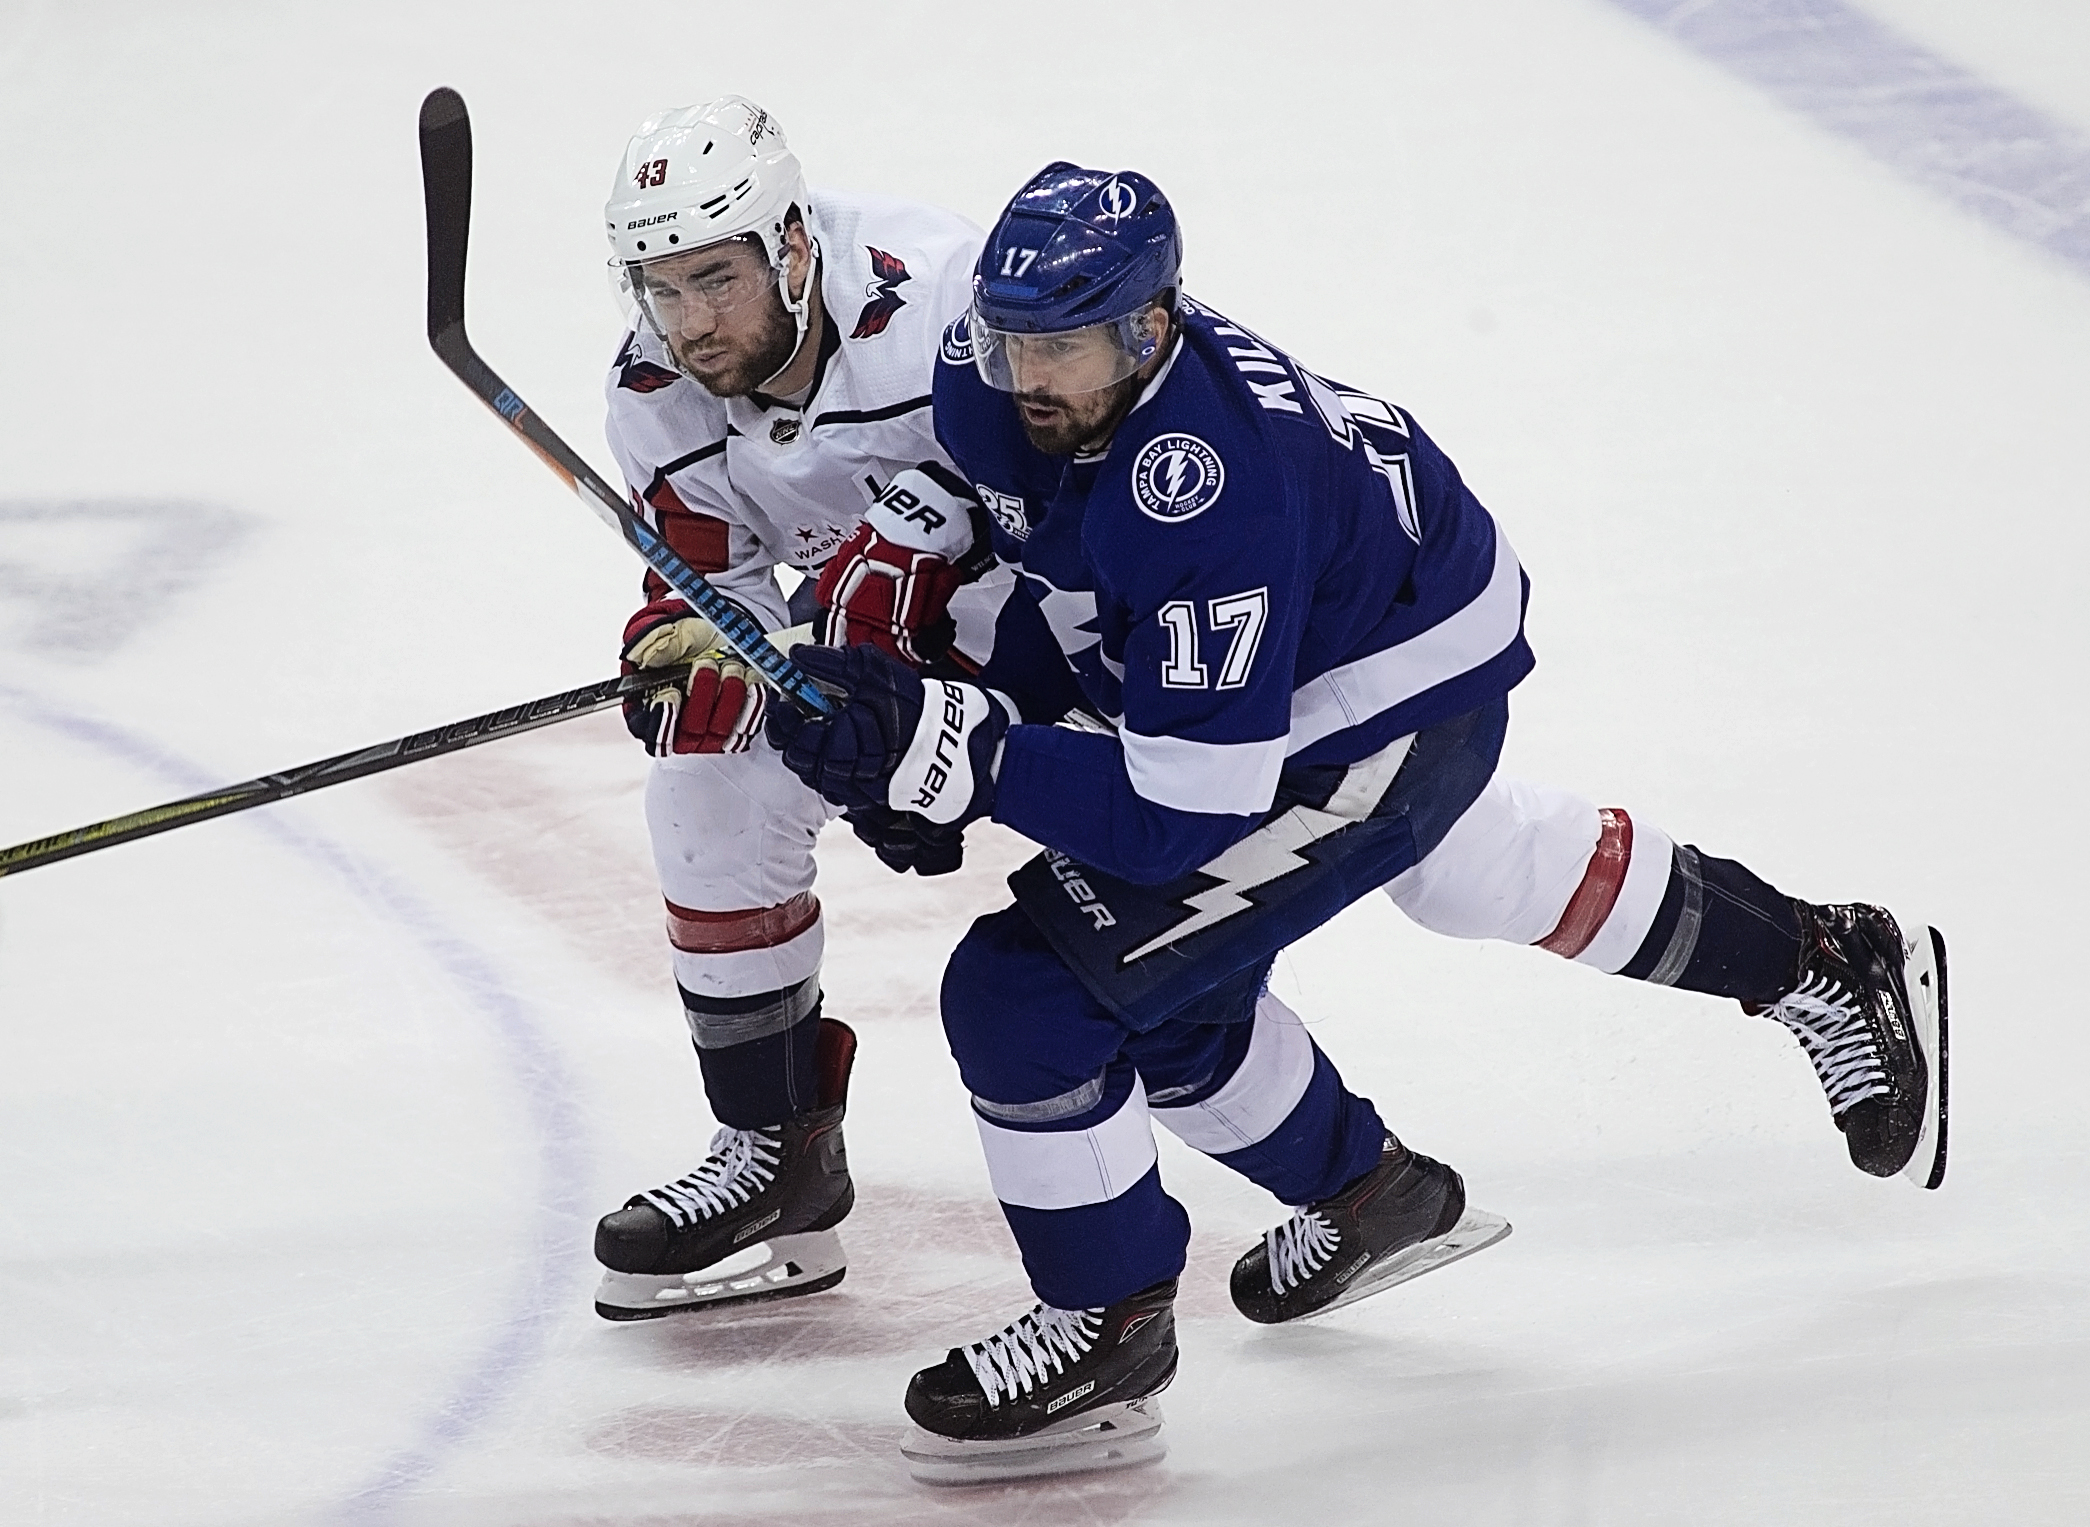 Alex Killorn mixes it up with Tom Wilson./CARMEN MANDATO